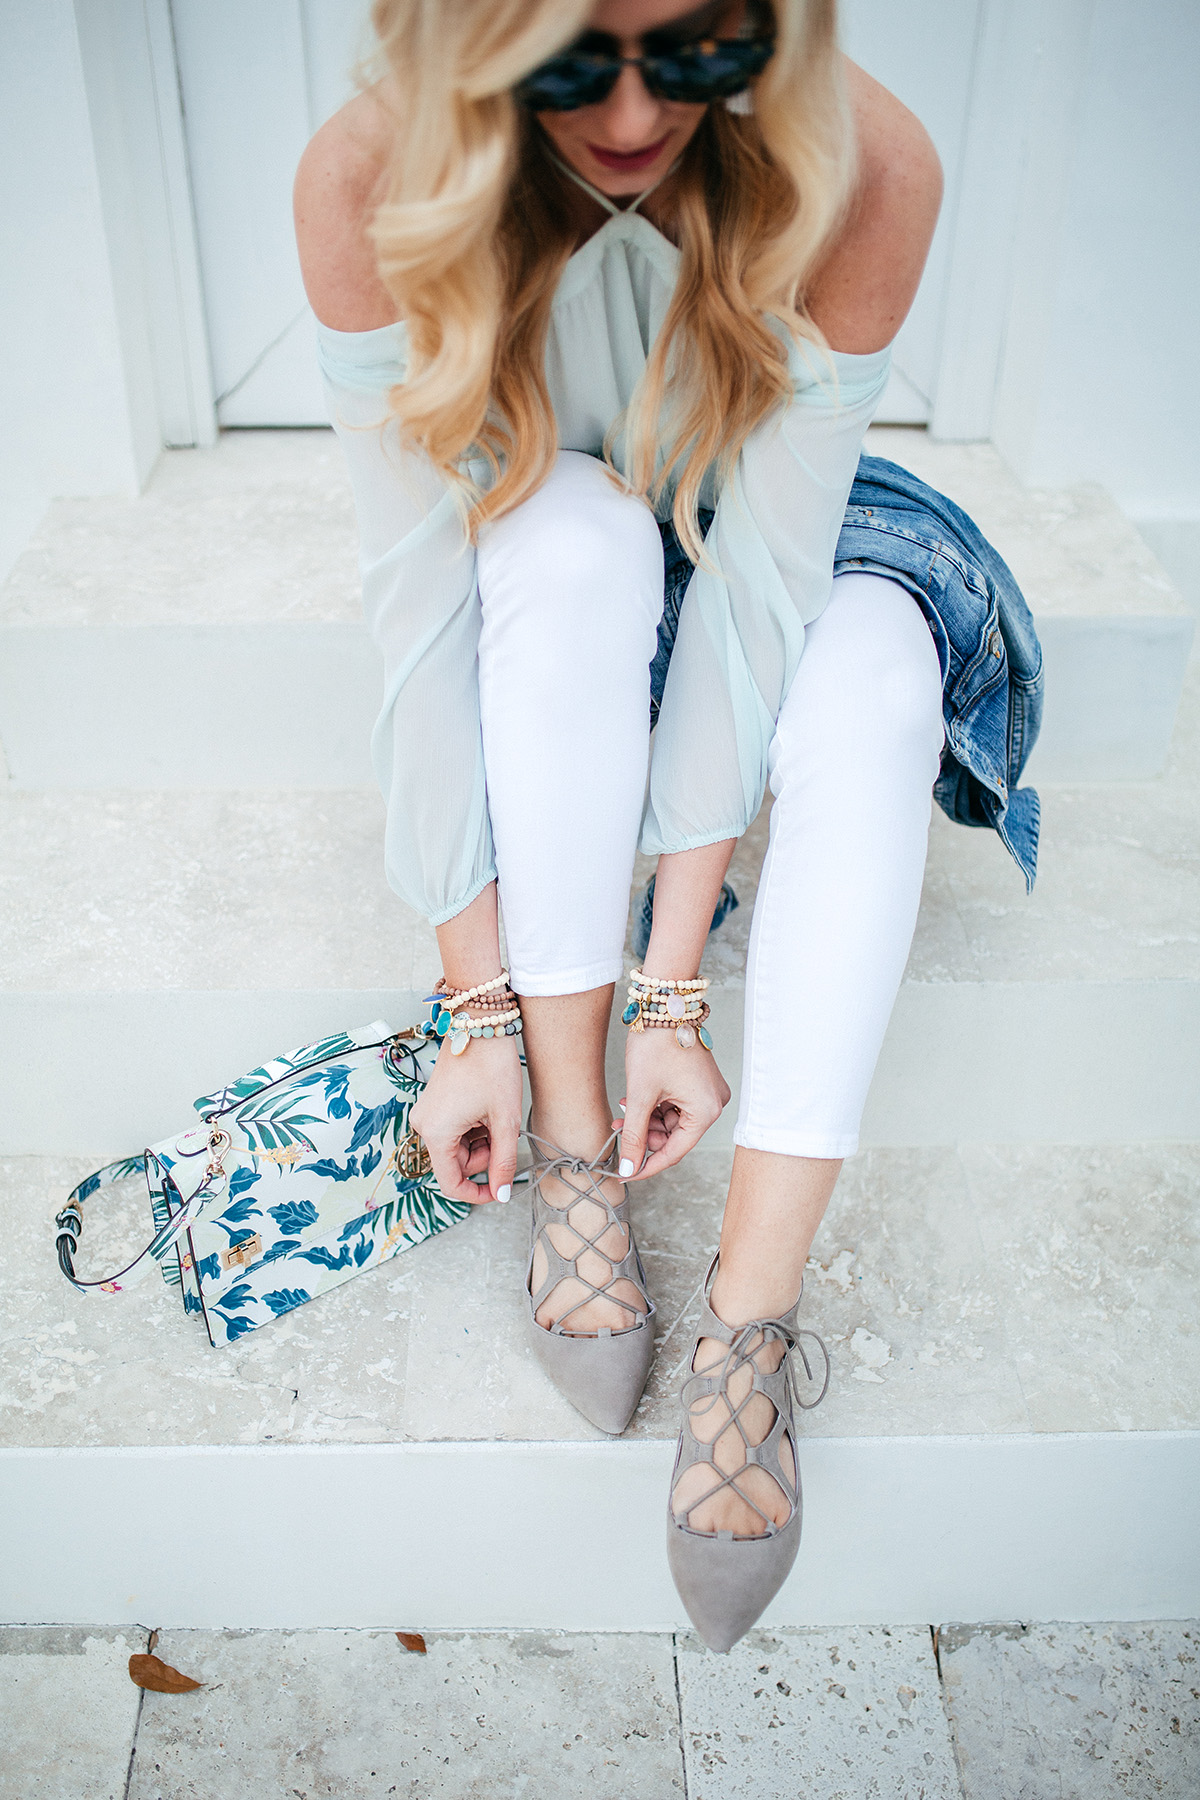 Rockport lace-up flats - a comfy AND pretty option for gals on their feet all day